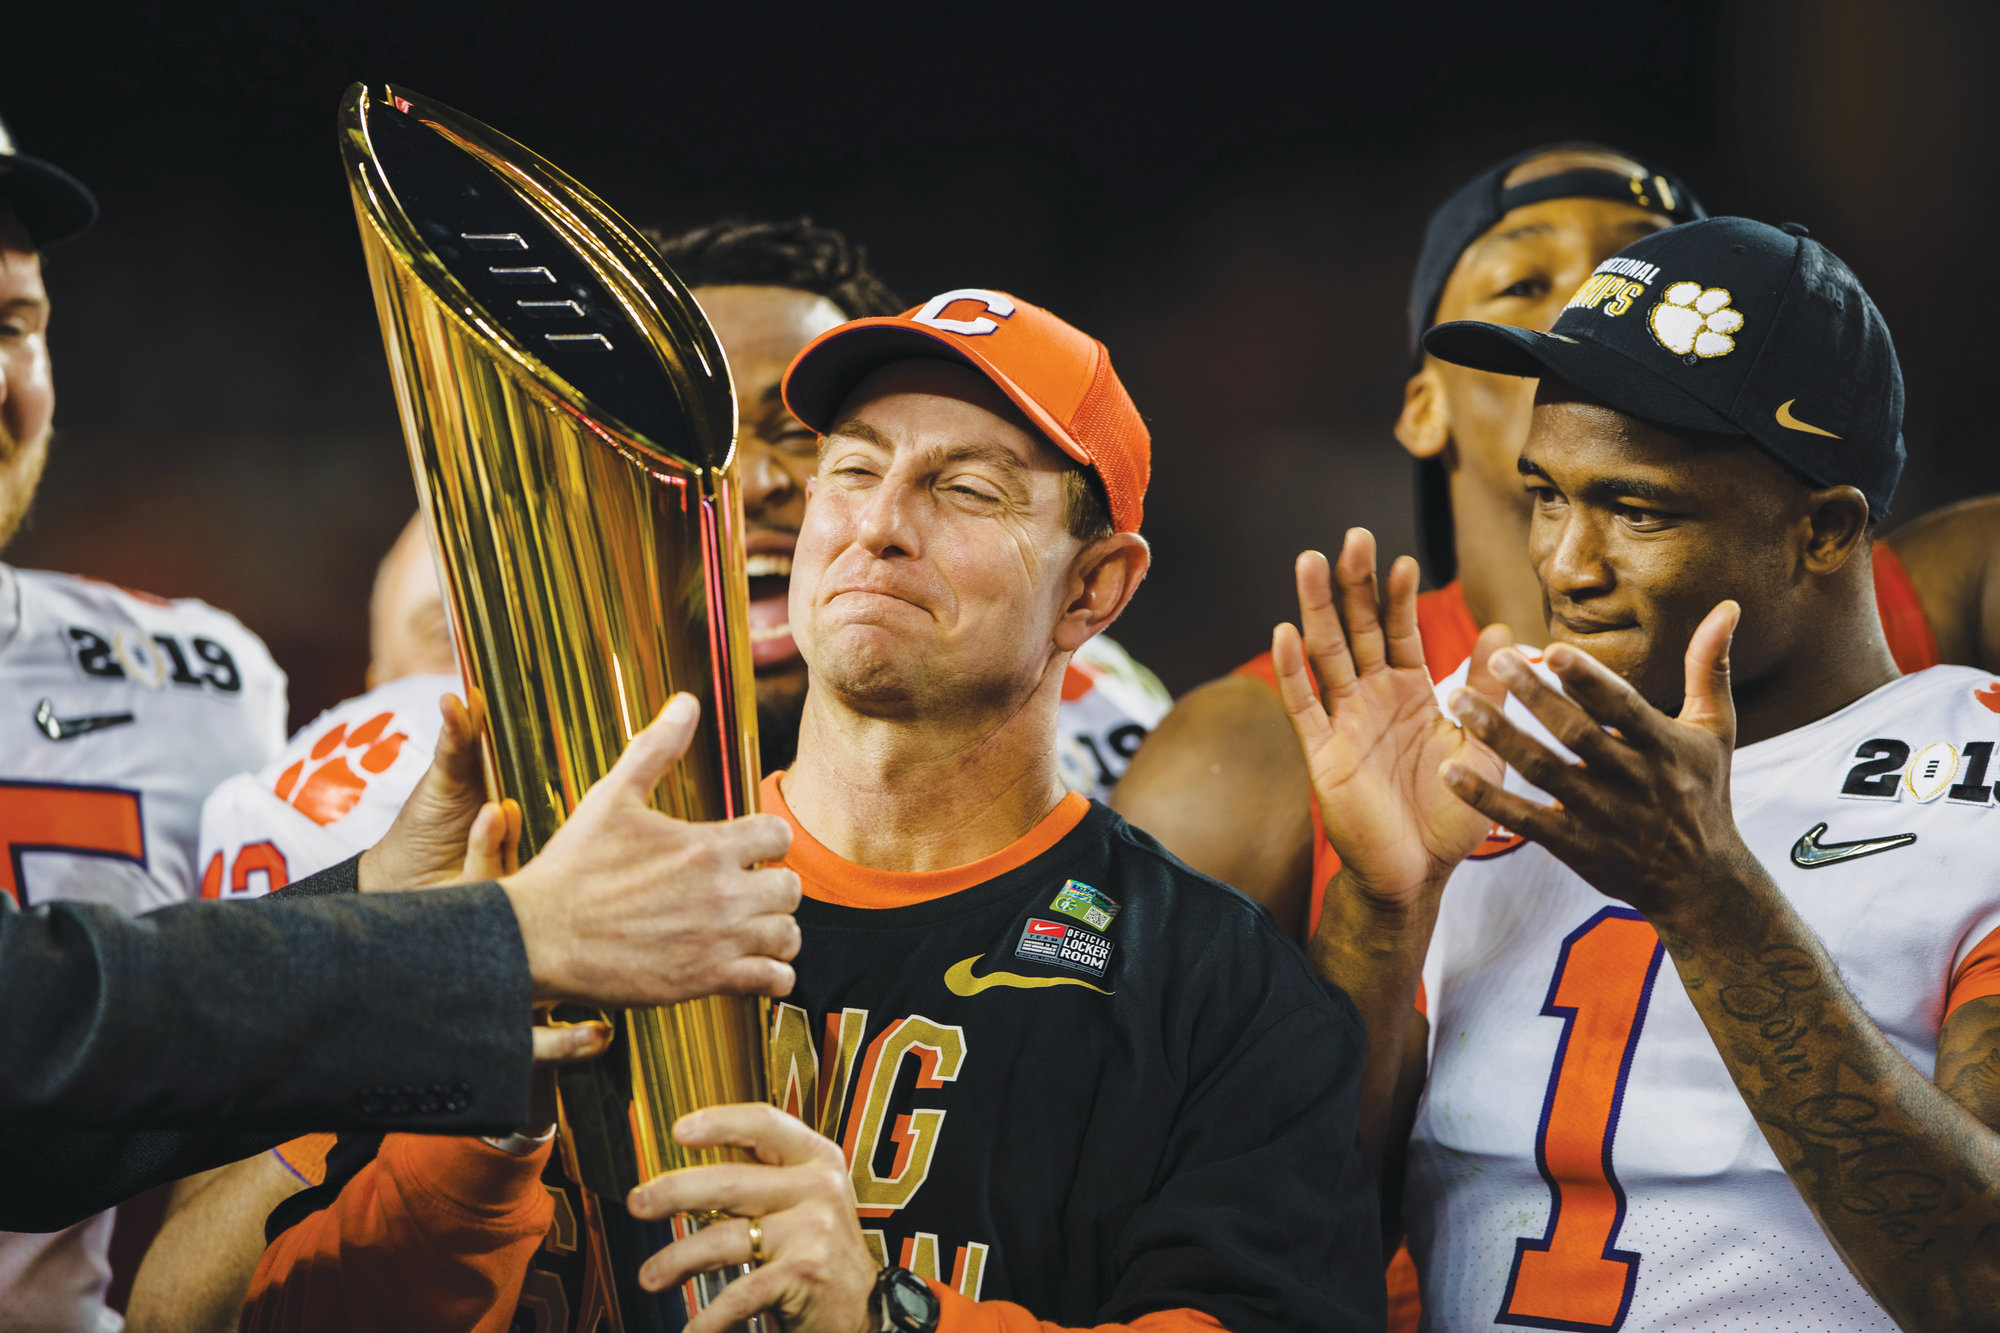 Clemson head coach Dabo Swinney, shown holding the national championship trophy, will be one of the speakers at Prowl & Growl on May 2 at Florence Center in Florence.